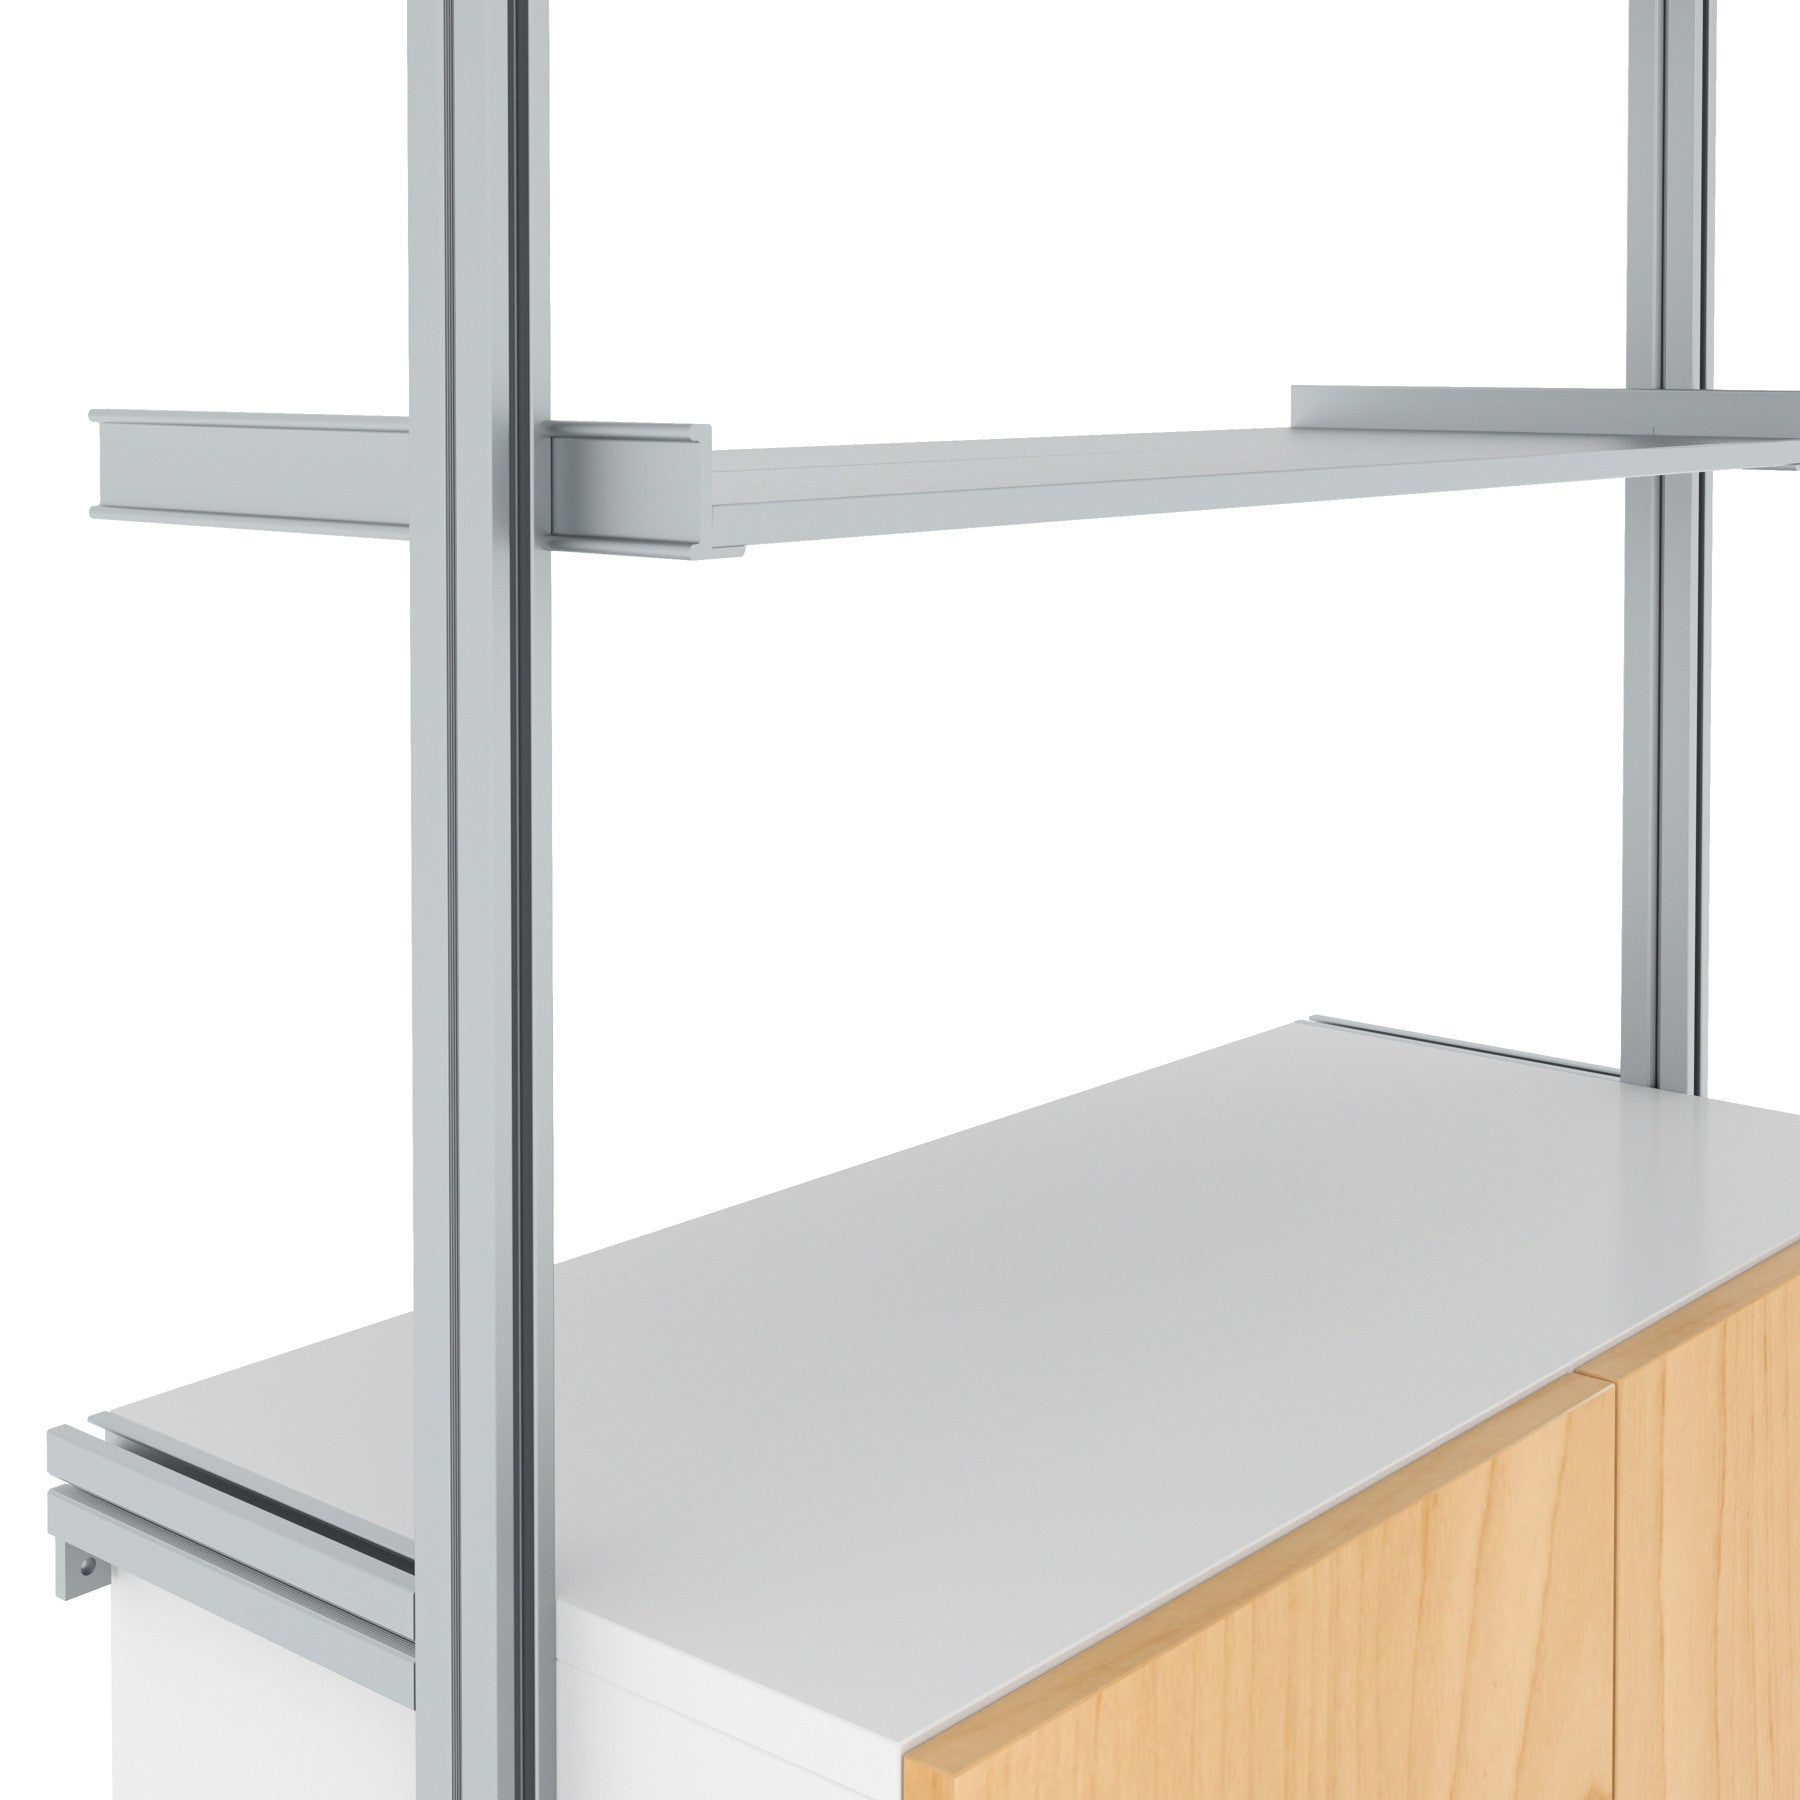 SALE ITEM - Fold Down Desk and Kitchen Shelves All-in-One